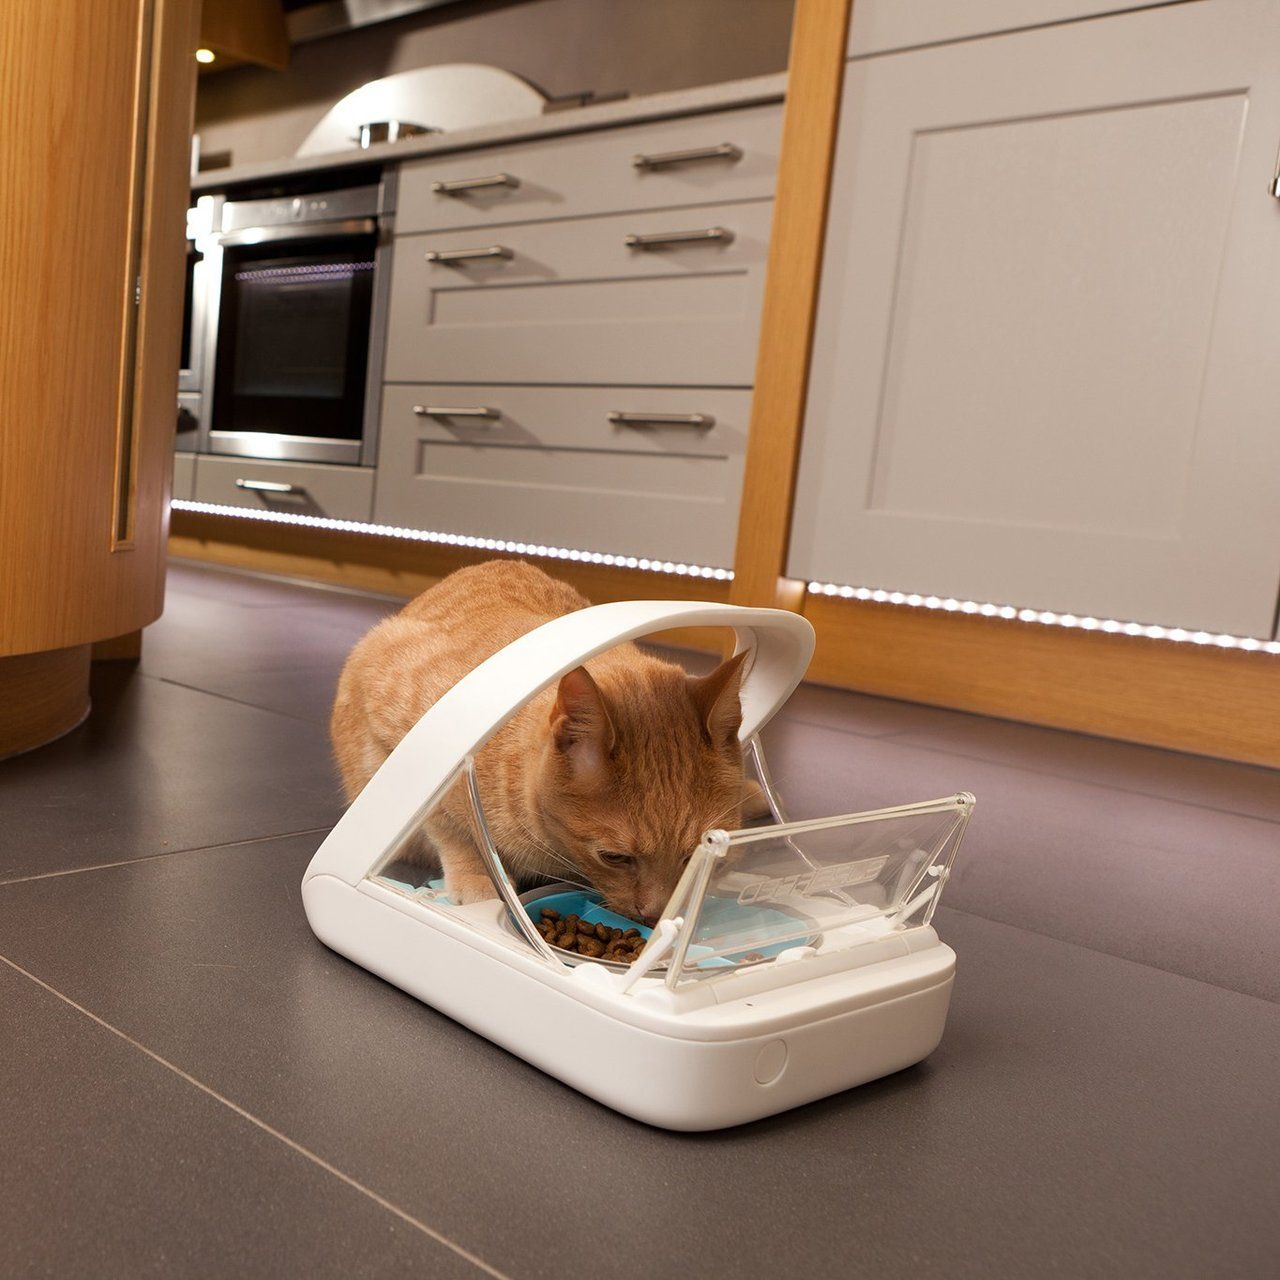 SureFeed Microchip Pet Feeder Pet feeder, Cat feeder